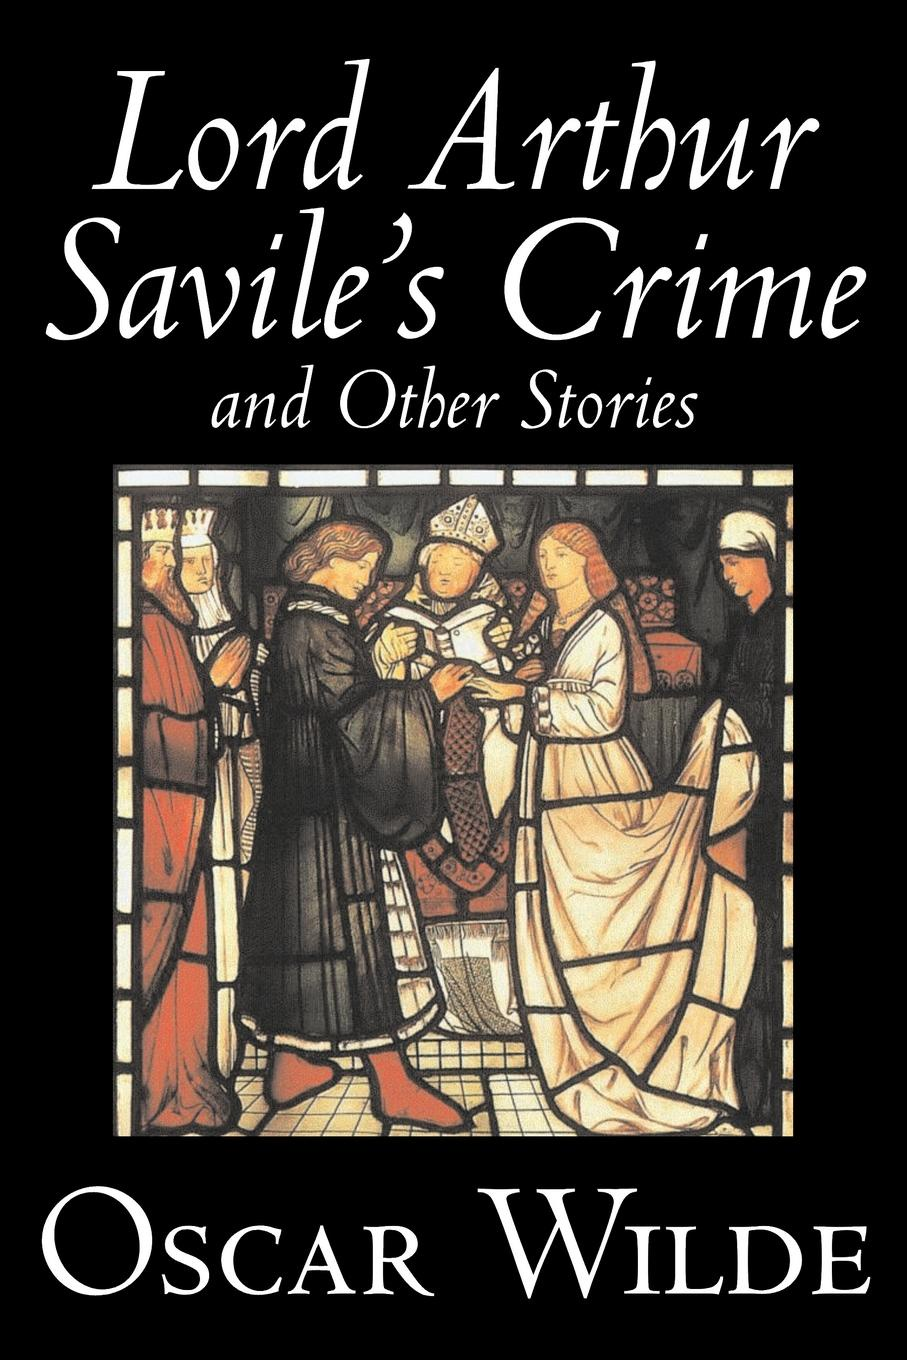 Oscar Wilde Lord Arthur Savile's Crime and Other Stories by Oscar Wilde, Fiction, Literary, Classics, Historical, Short Stories oscar wilde the ballad of reading gaol a poetry